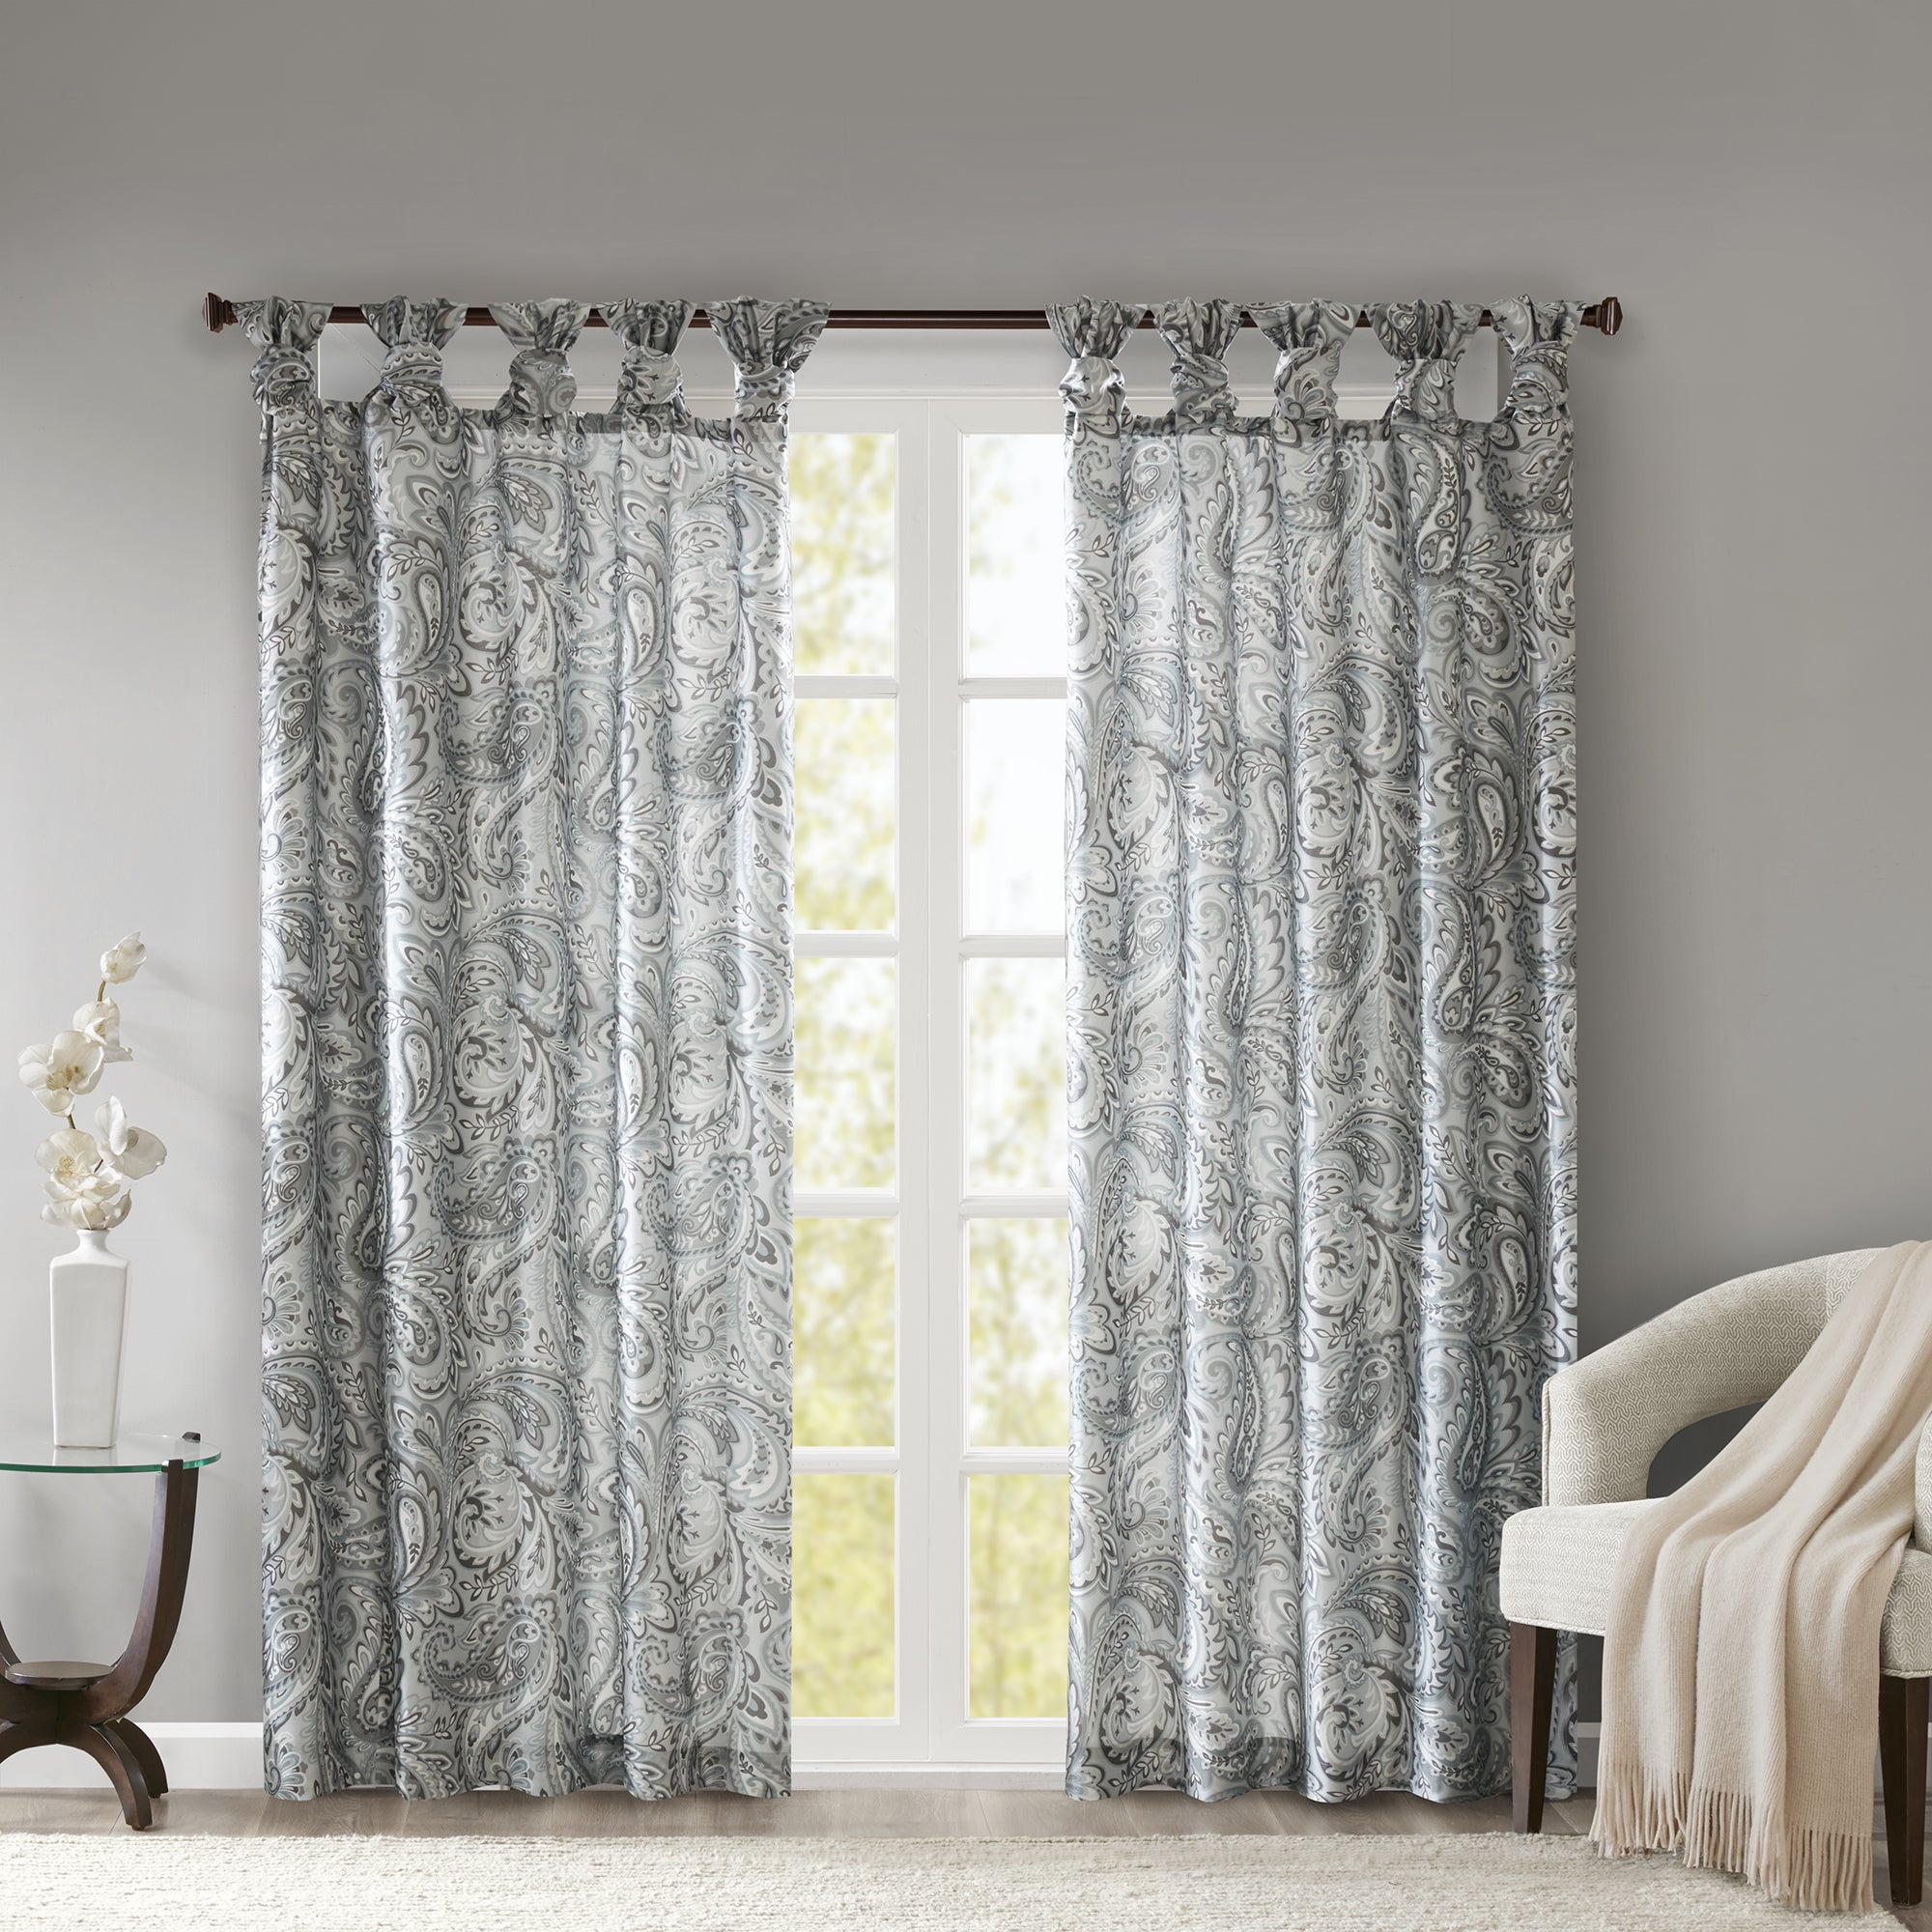 Madison Park Rosalie Twist Tab Paisley Printed Single Window Curtain Panel Regarding Sunsmart Dahlia Paisley Printed Total Blackout Single Window Curtain Panels (View 7 of 30)